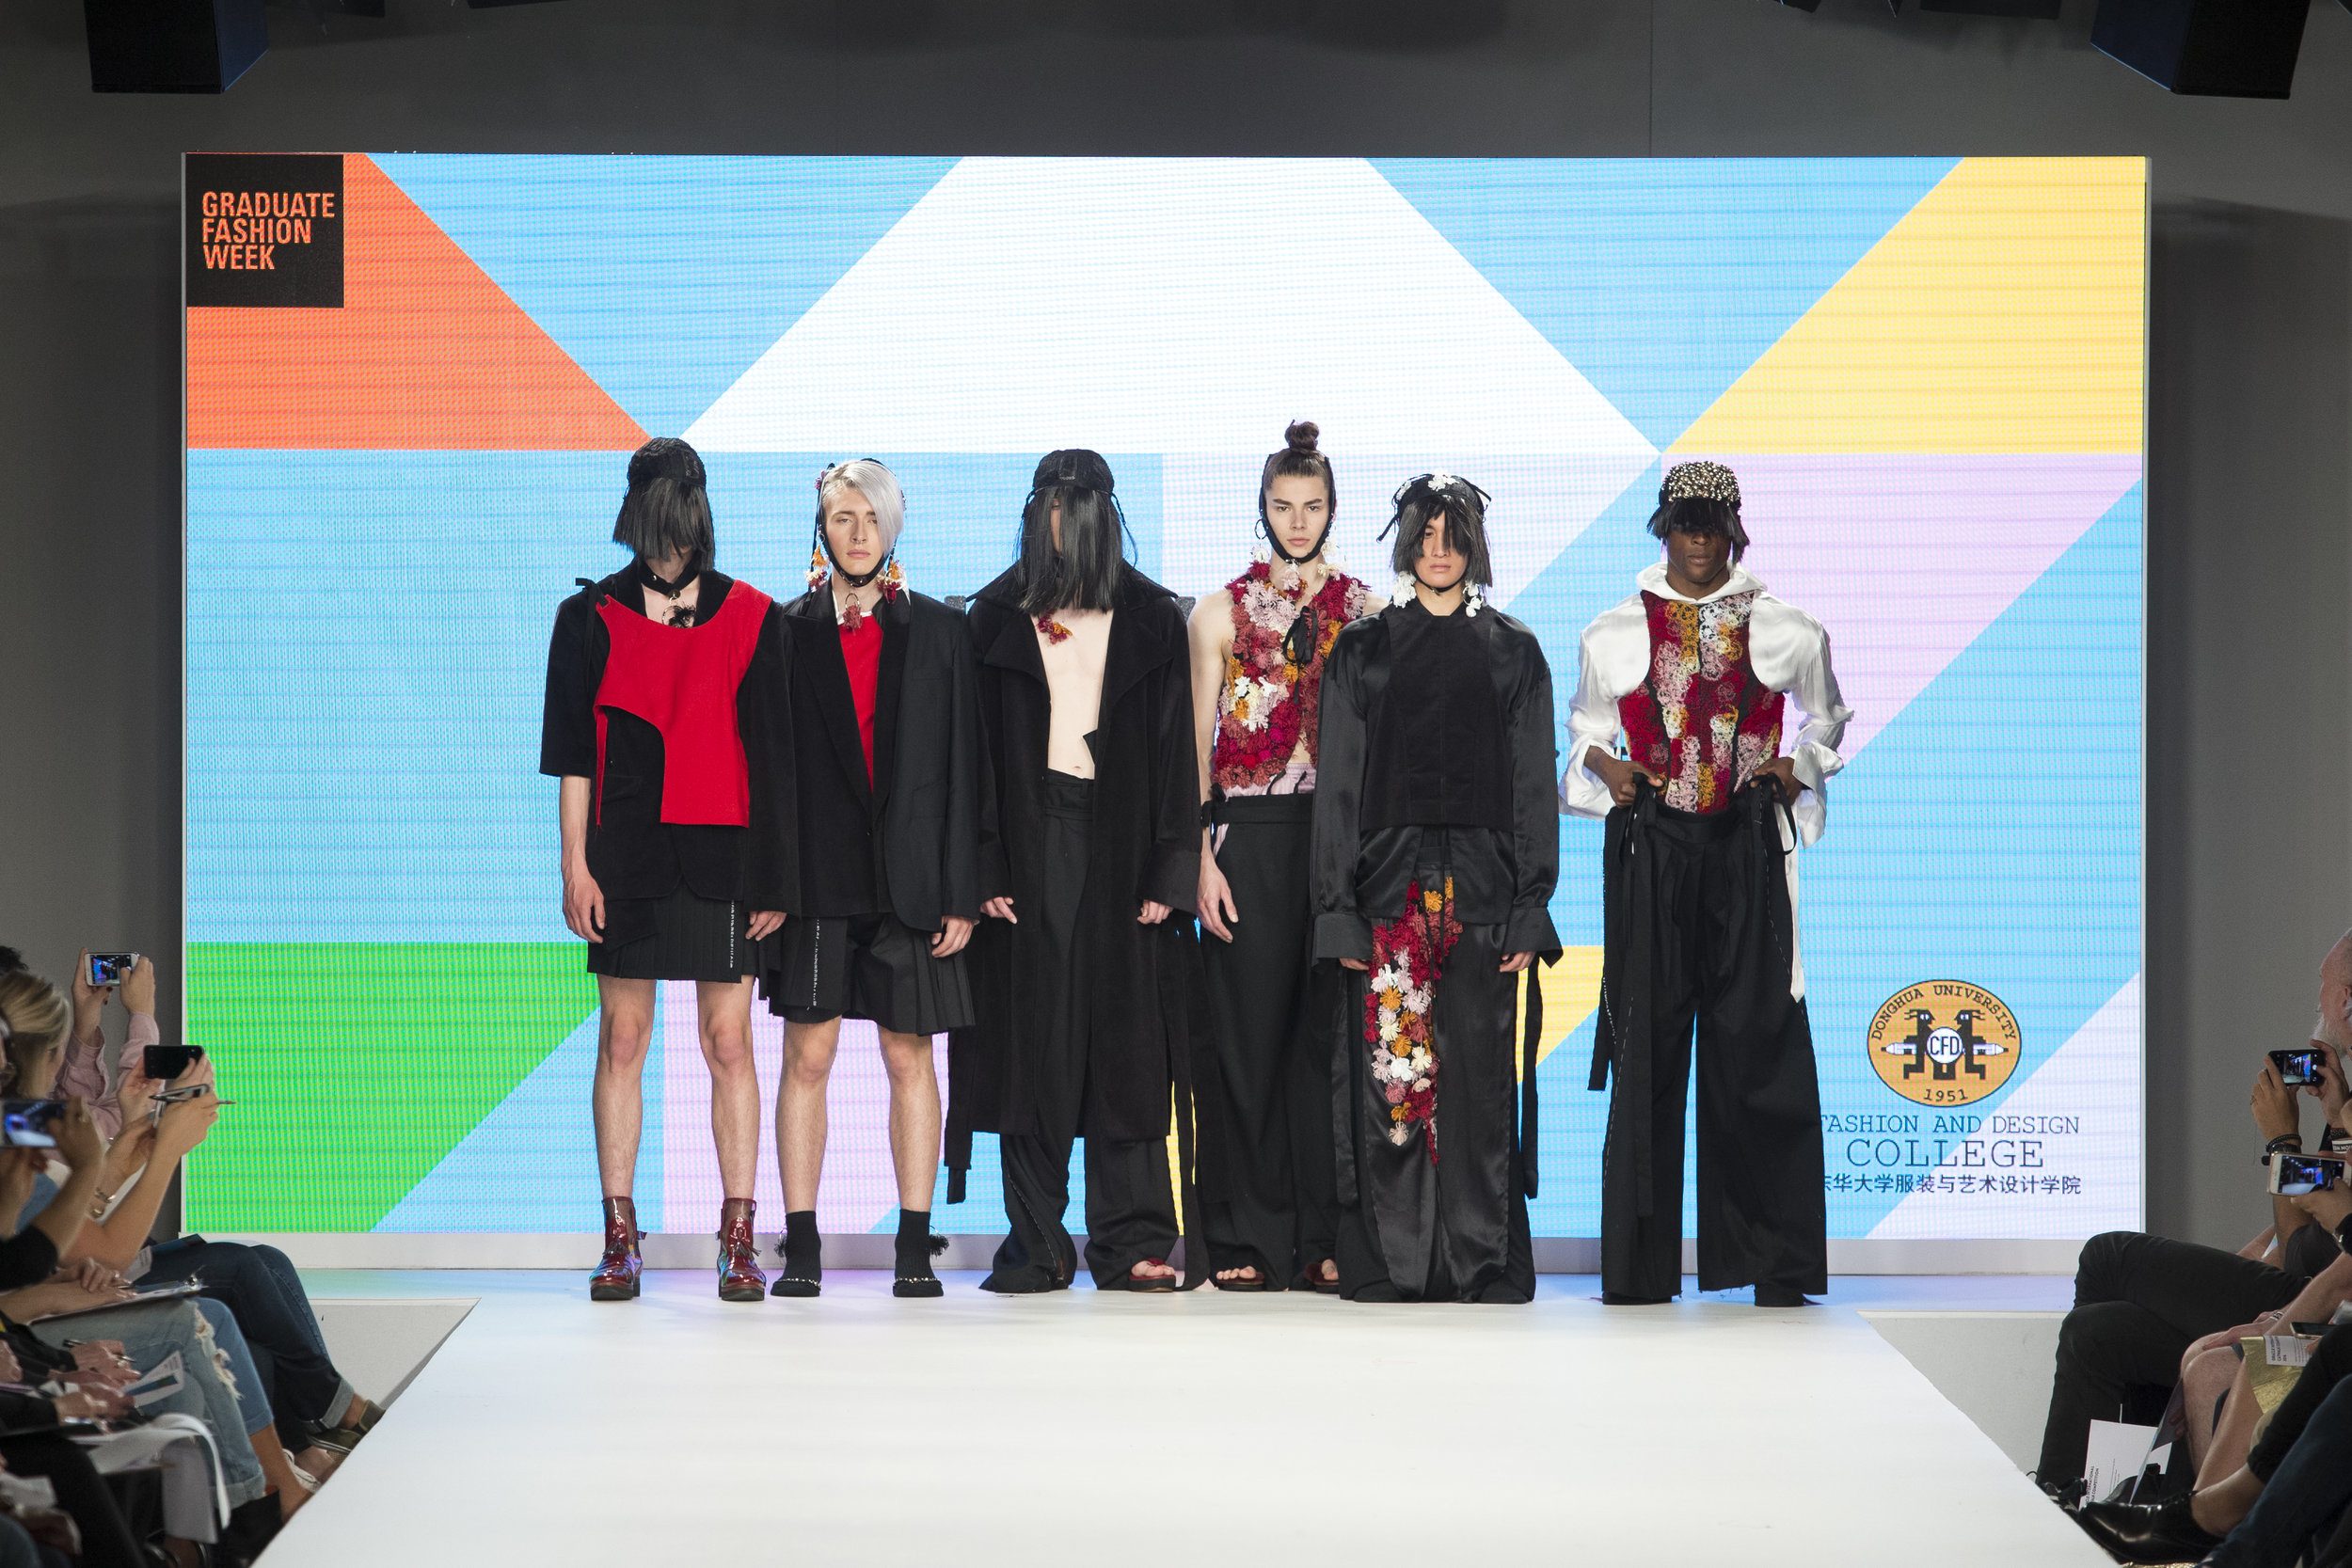 Donghua University College Of Fashion And Design Graduate Fashion Week